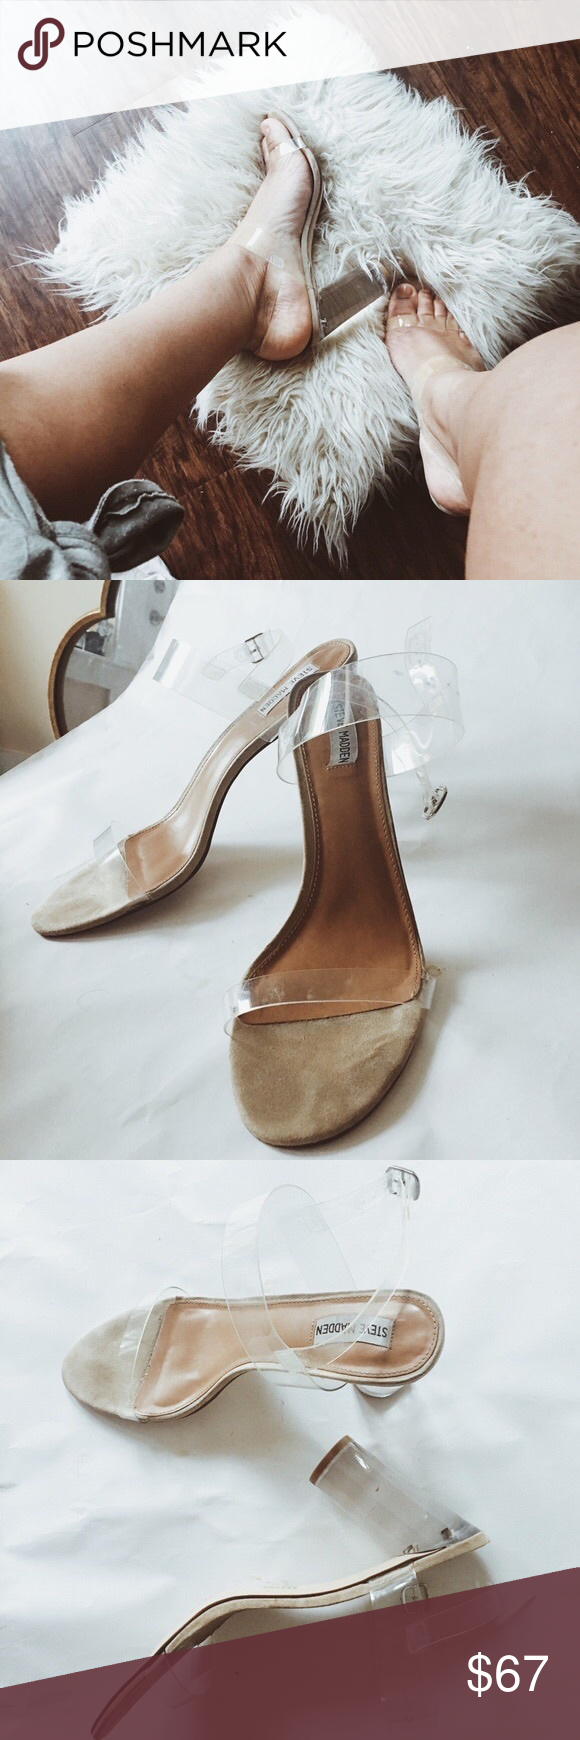 e353aeea785d Perspex Clear   Nude Heels Worn beautiful gems! Camille Lucite Clear Block  Heel Dress Sandra still being sold at  99.99 at Dillard s.